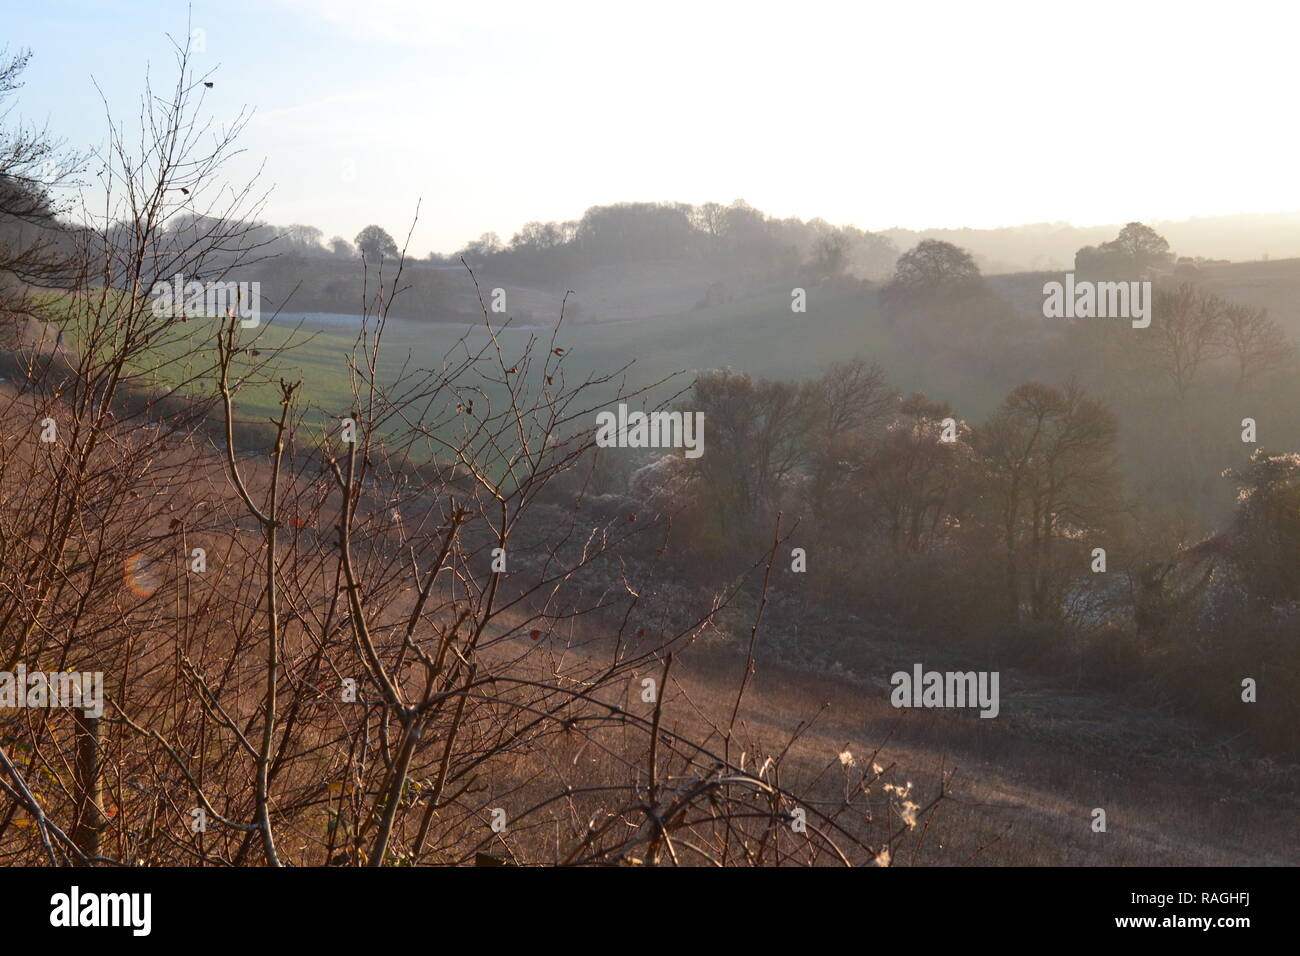 A January afternoon at Romney Street looking towards Magpie Bottom. Countryside in north west Kent, England - Stock Image